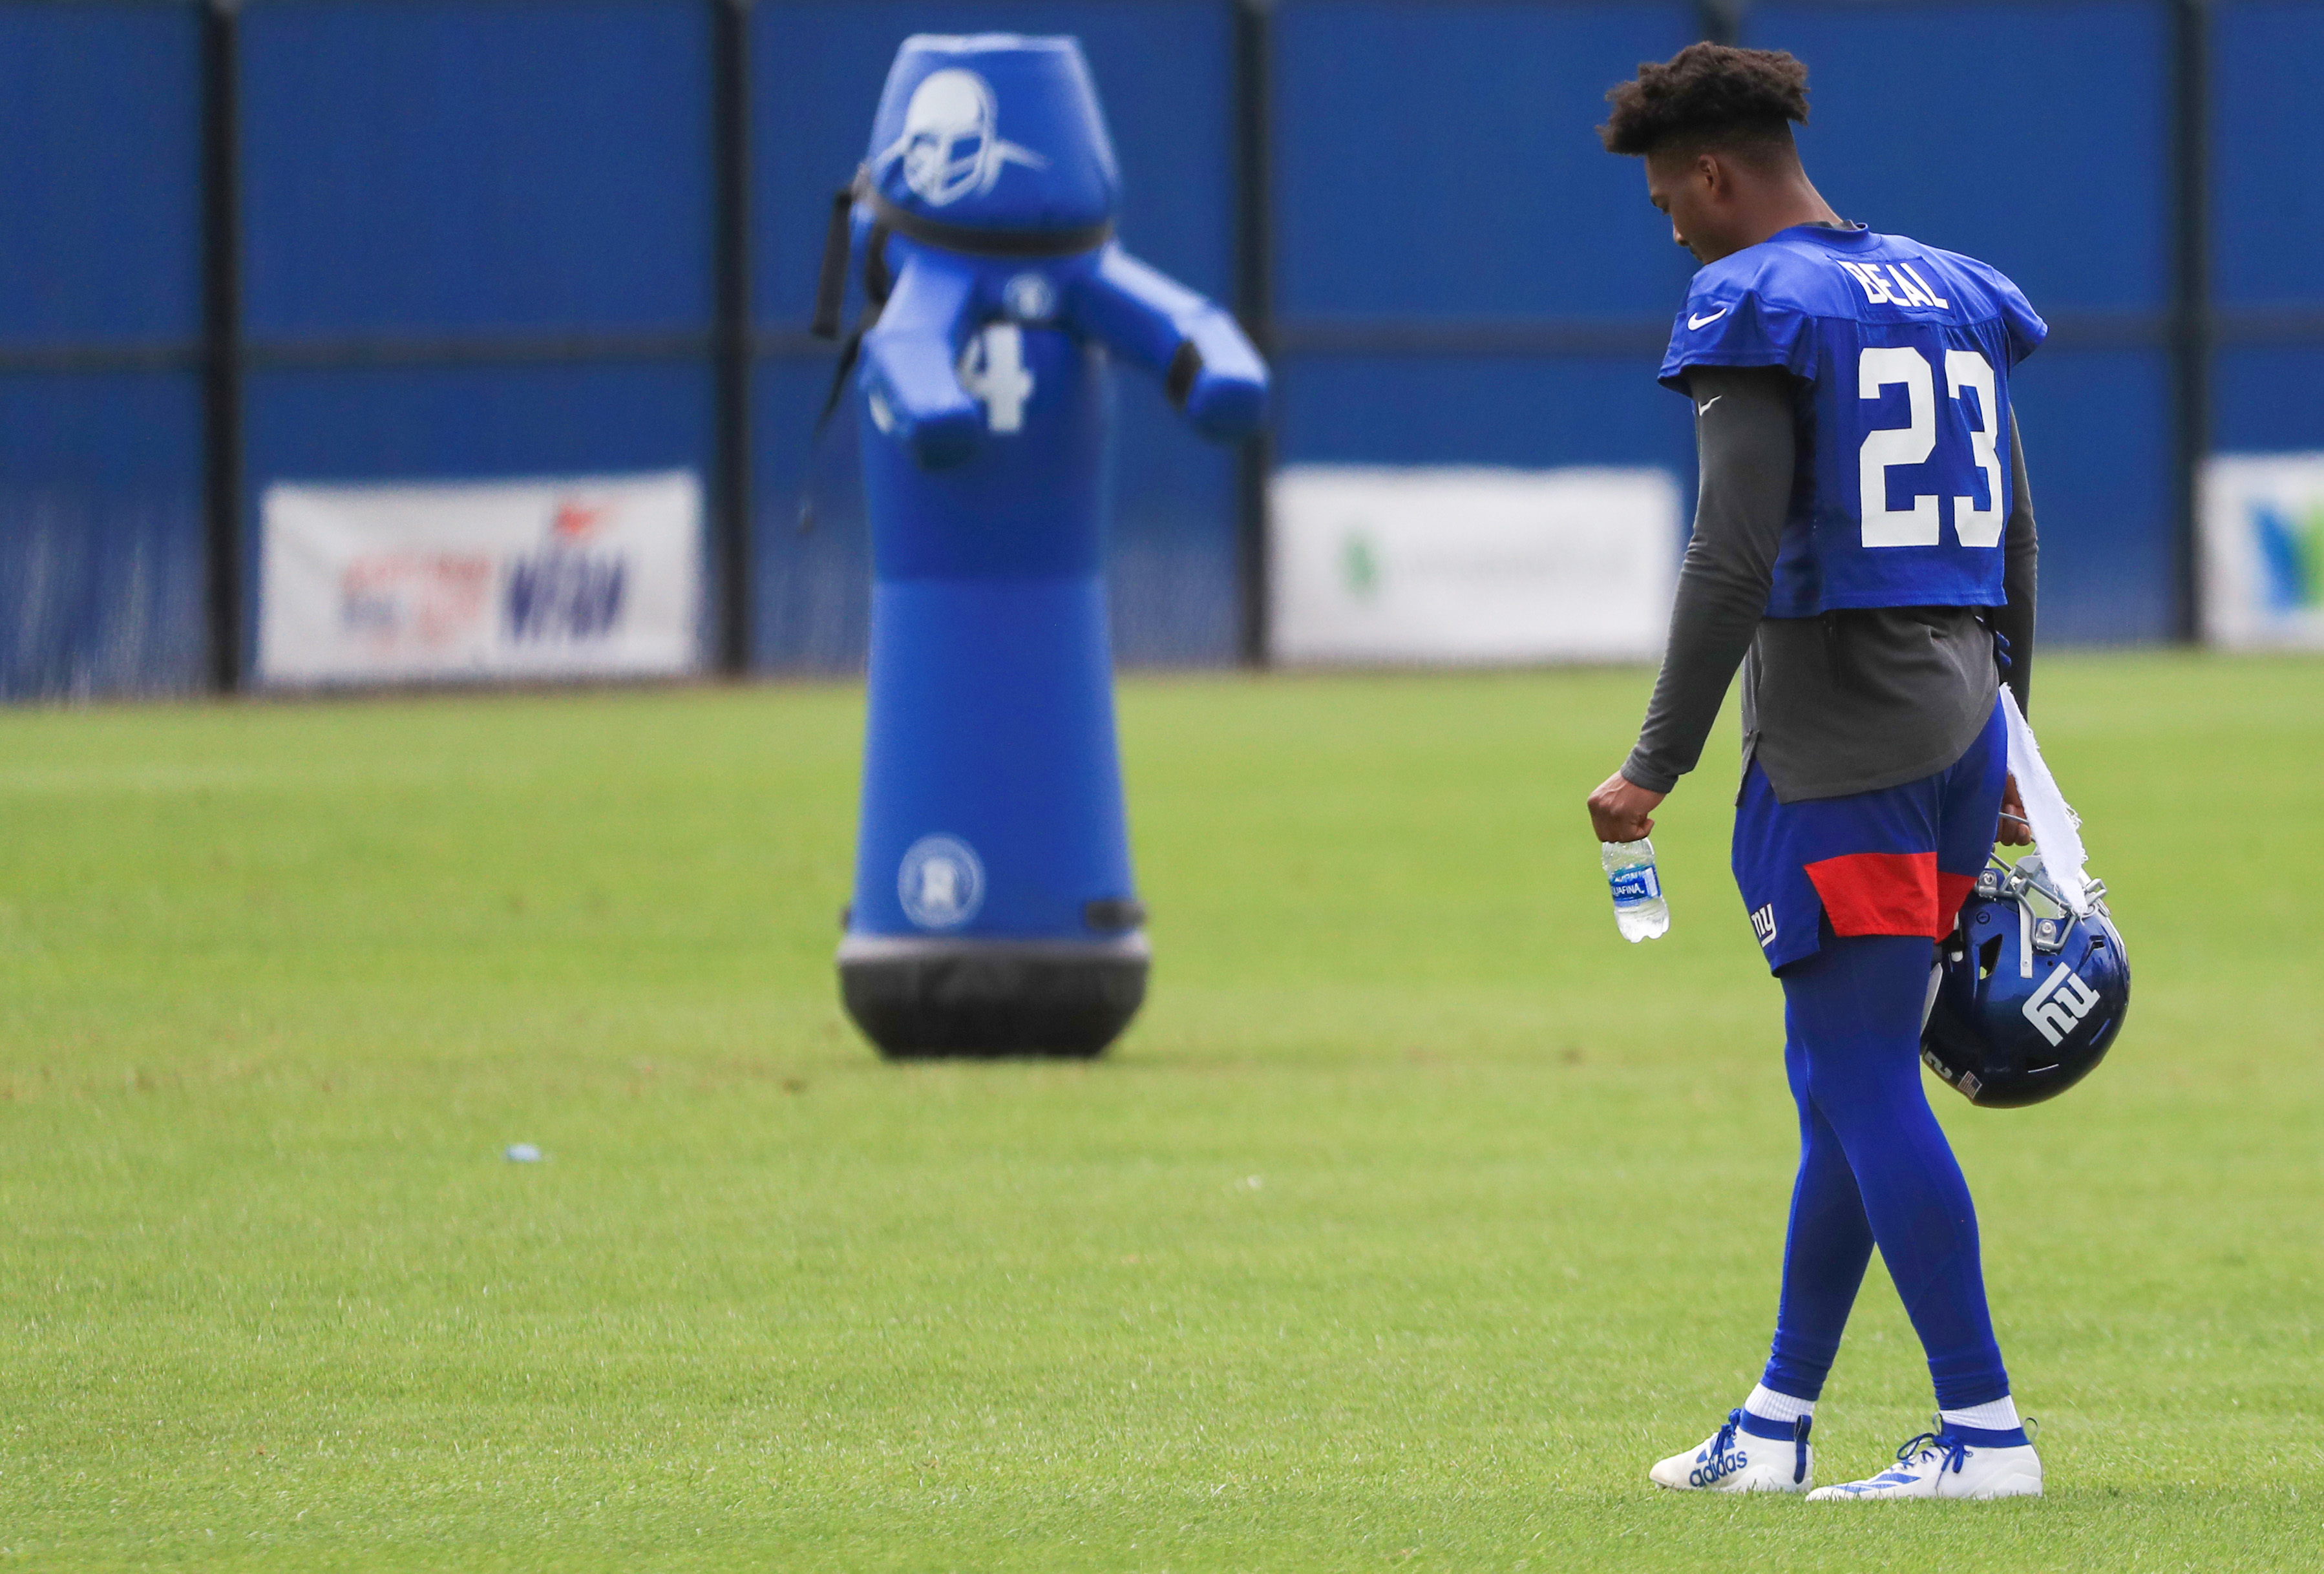 Giants' Sam Beal willing to play in slot with DeAndre Baker, Janoris Jenkins to form 'DB crew you don't want to mess with'